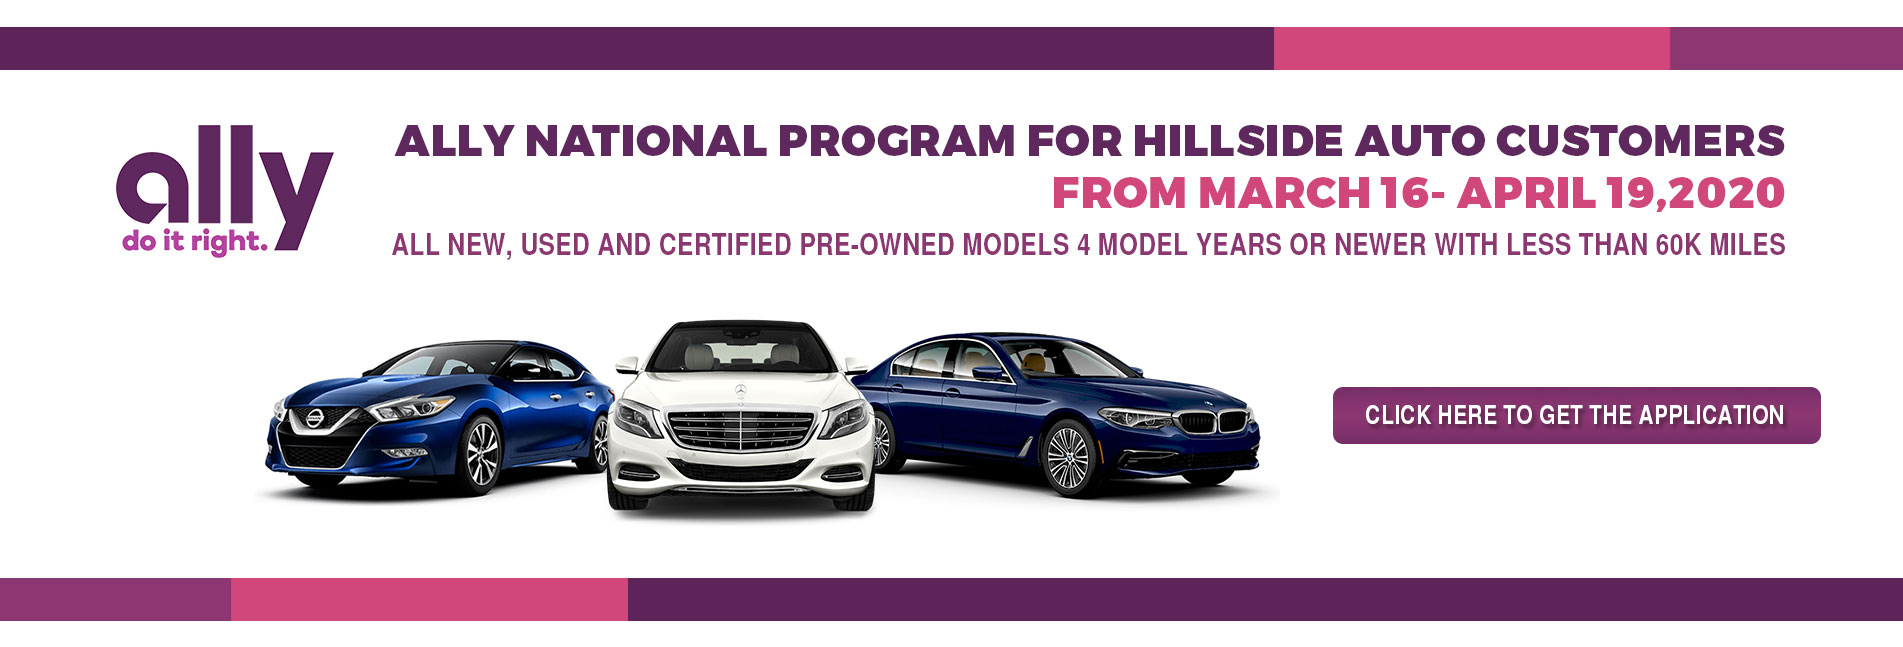 Ally National Program For Hillside Auto Customers